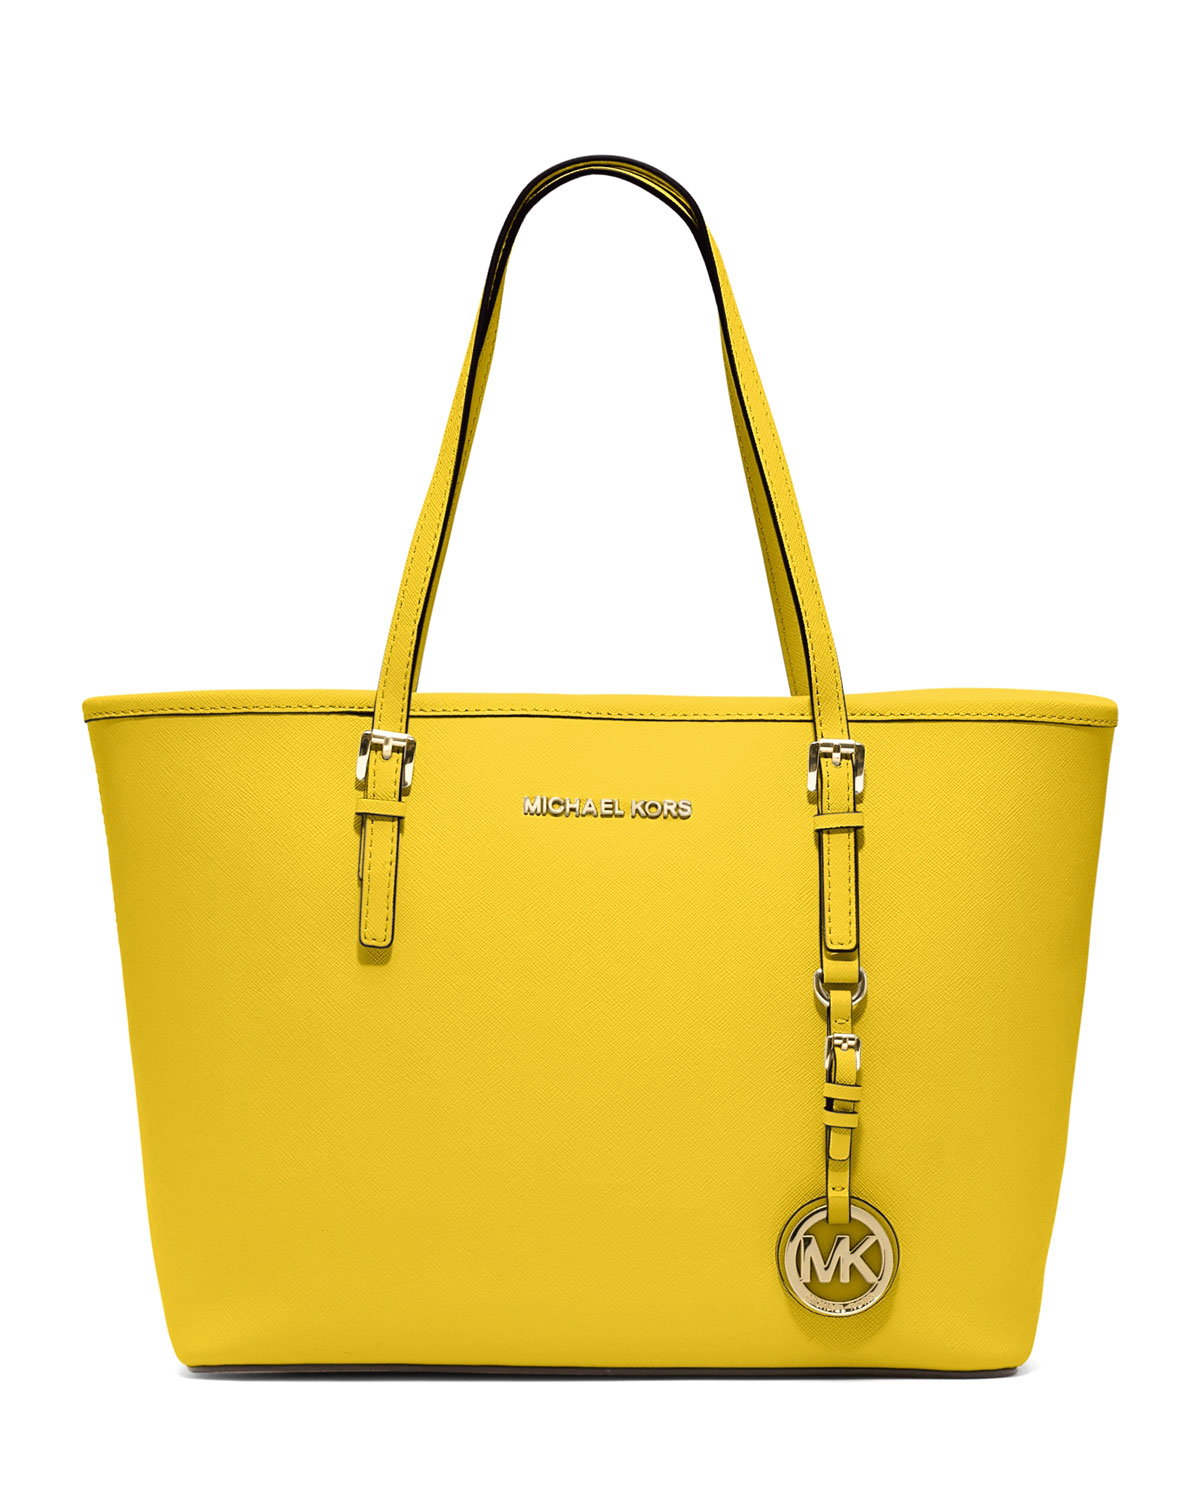 michael kors small jet set saffiano travel tote in yellow. Black Bedroom Furniture Sets. Home Design Ideas